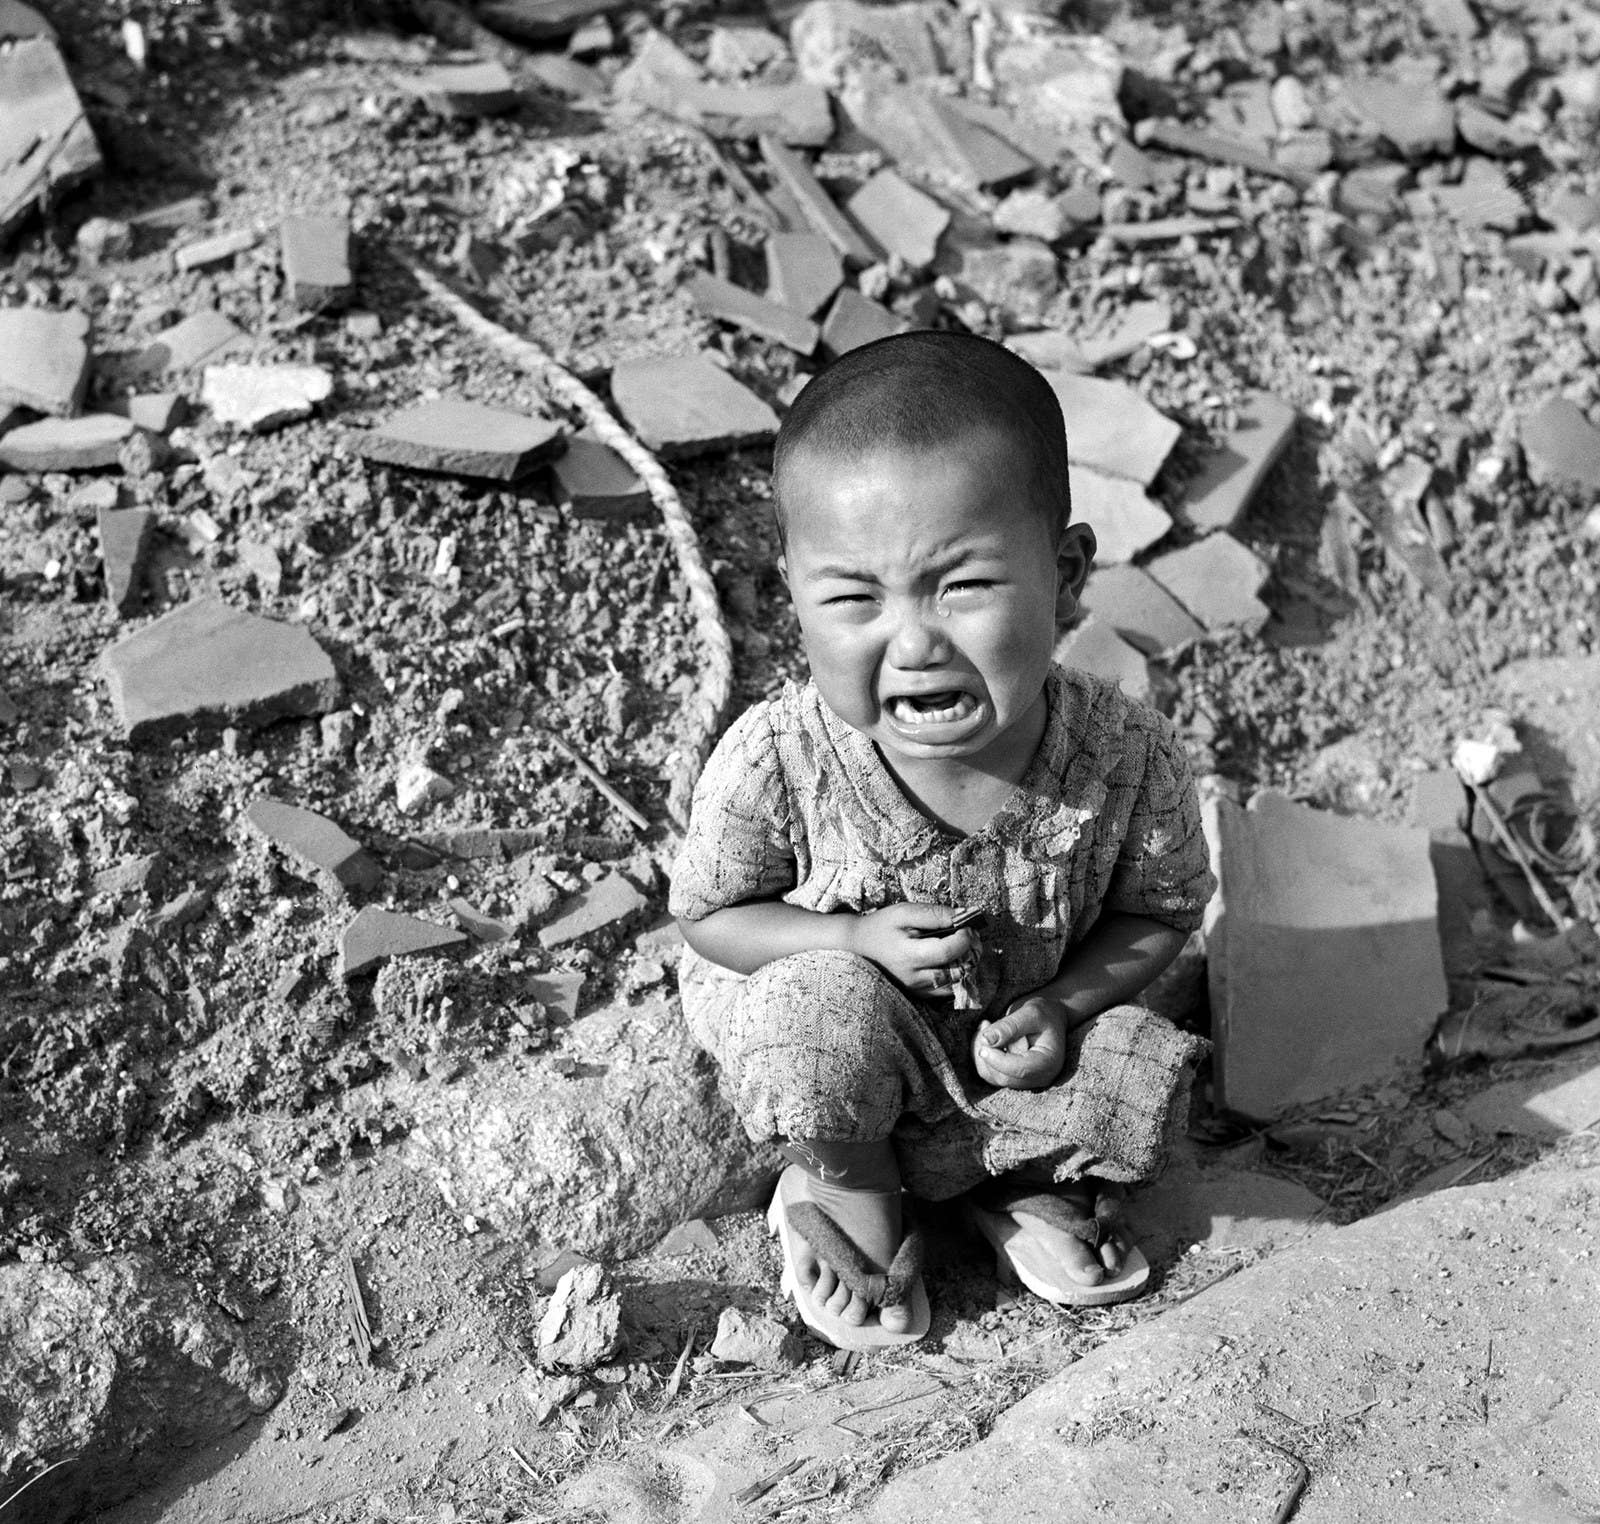 disturbing pictures from the aftermath of nuclear warfare a ese baby sits cries in the rubble following the explosion in hiroshima on aug